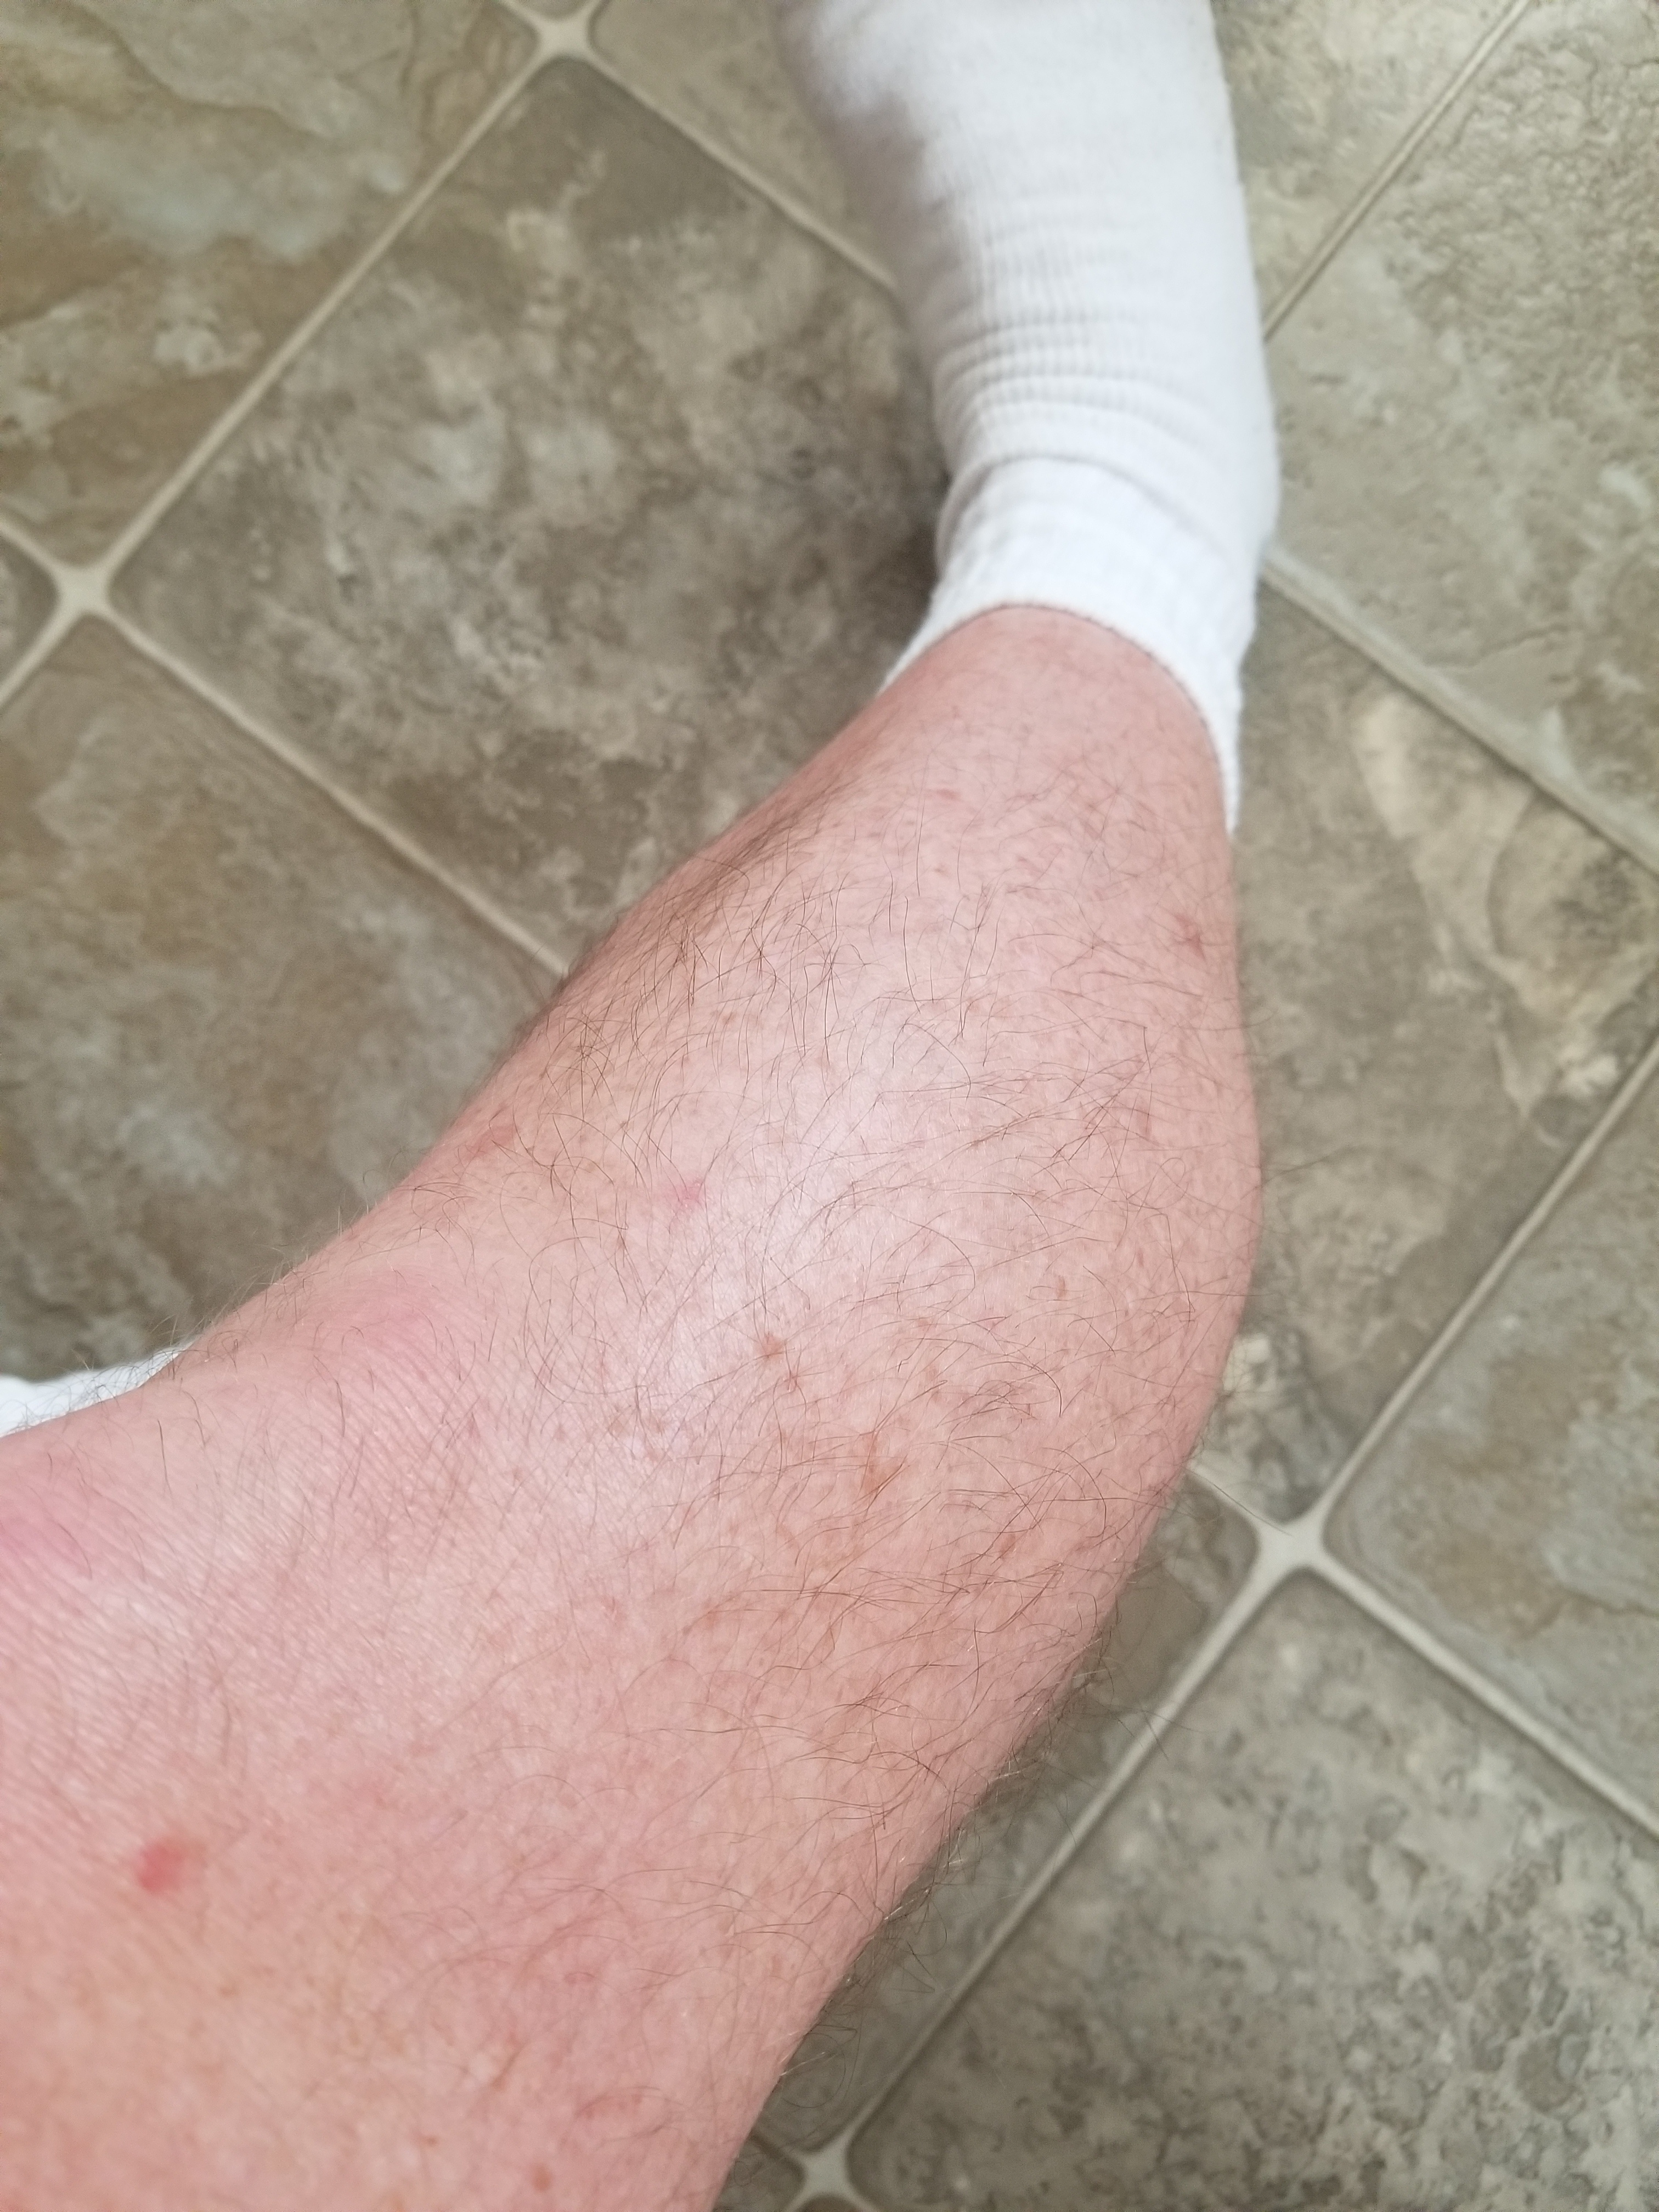 So My Leg Hair Is Patchy On My Thighs And Normal Looking On The Bottom  Half. I Want To Know If There Is A Way For It To Evenly Grow And Not